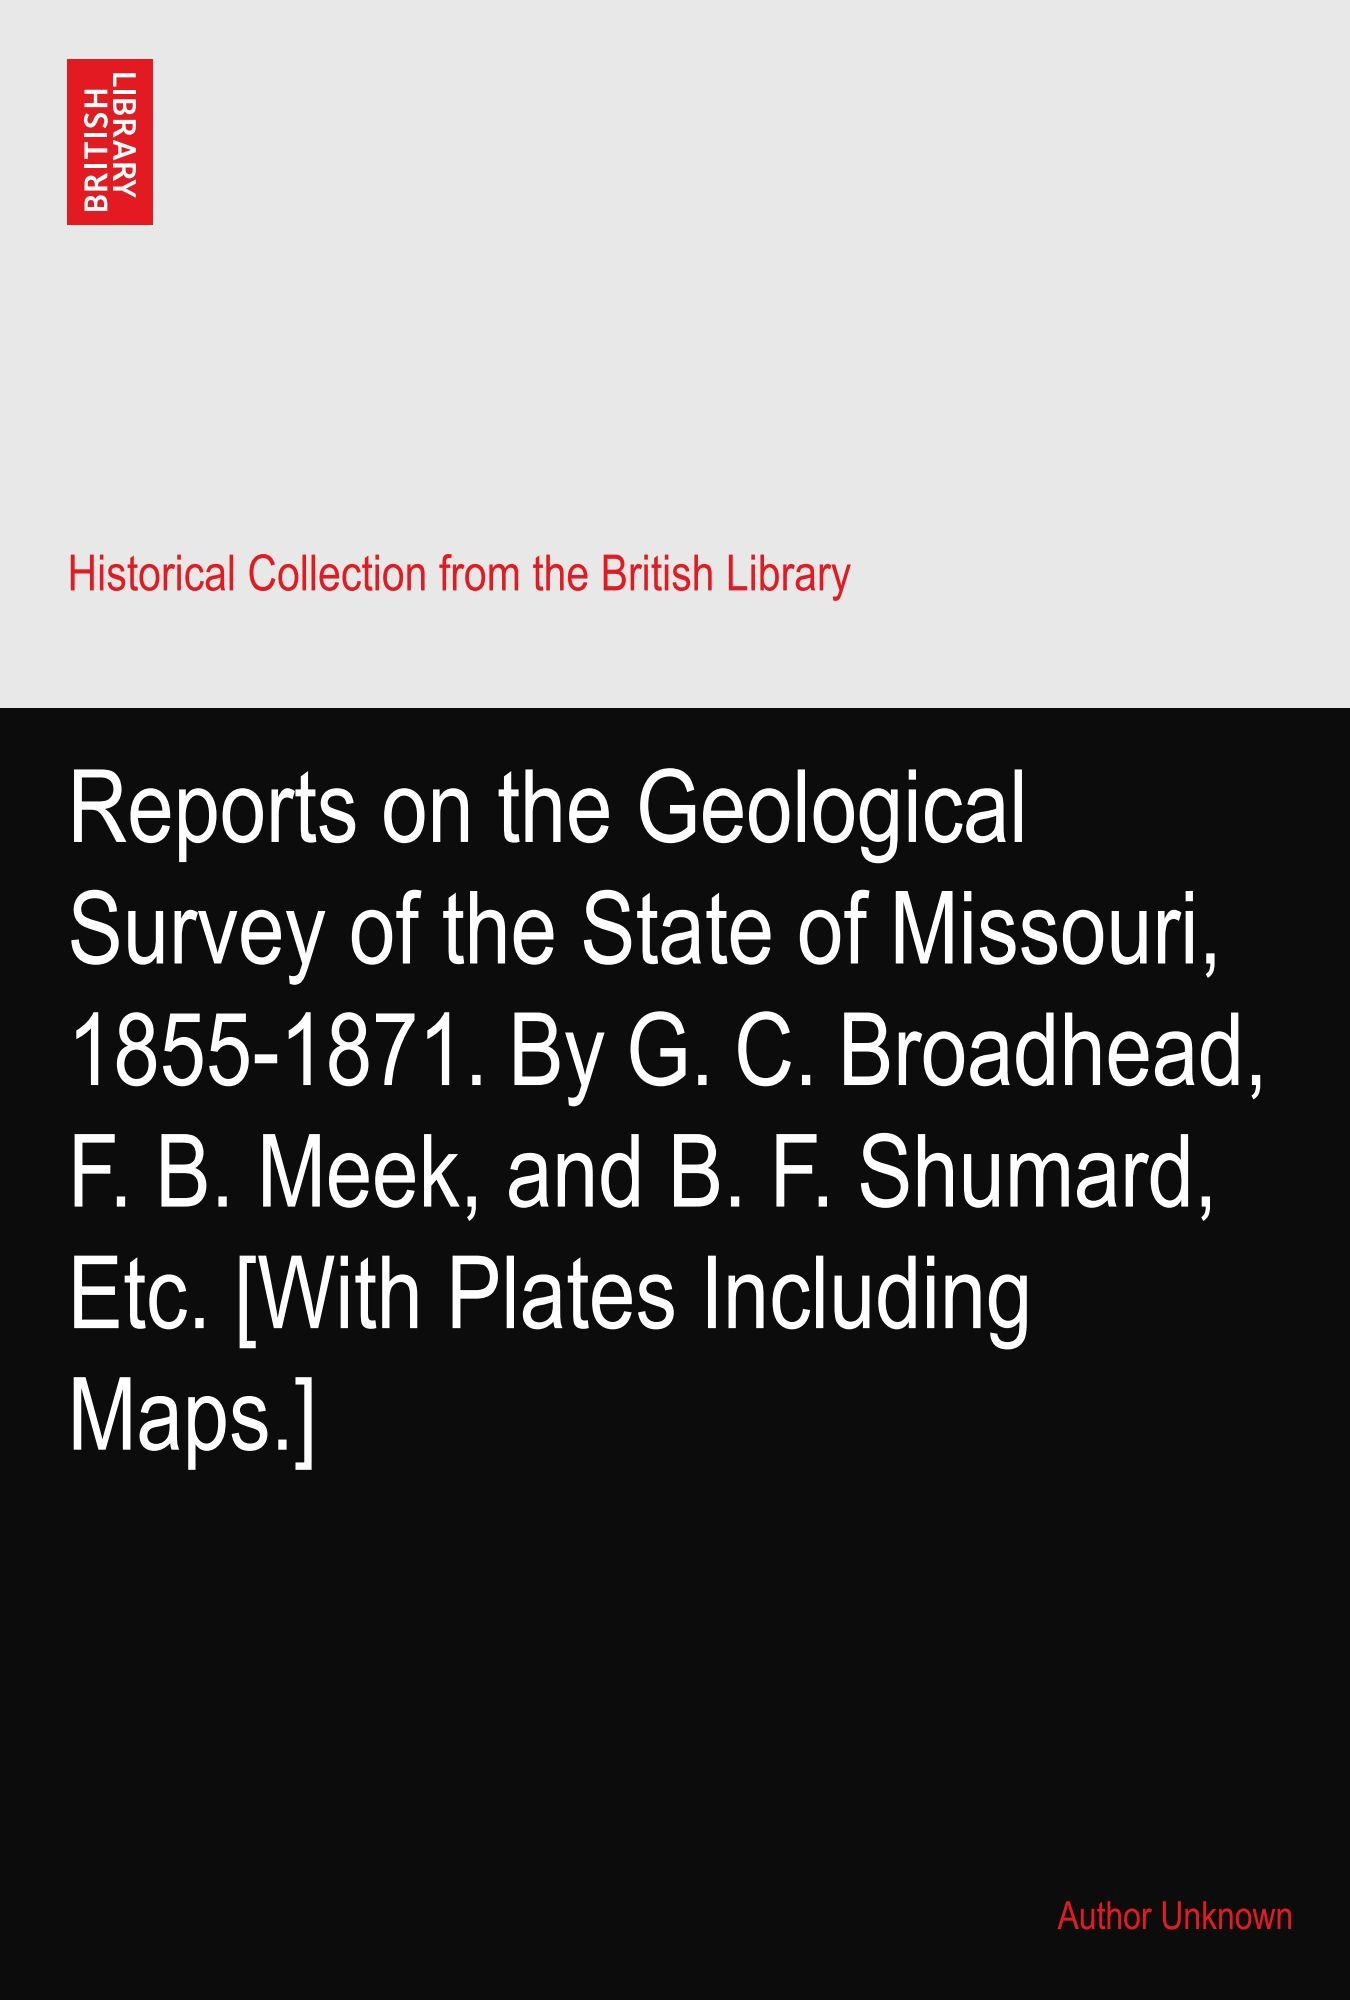 Reports on the Geological Survey of the State of Missouri, 1855-1871. By G. C. Broadhead, F. B. Meek, and B. F. Shumard, Etc. [With Plates Including Maps.] pdf epub